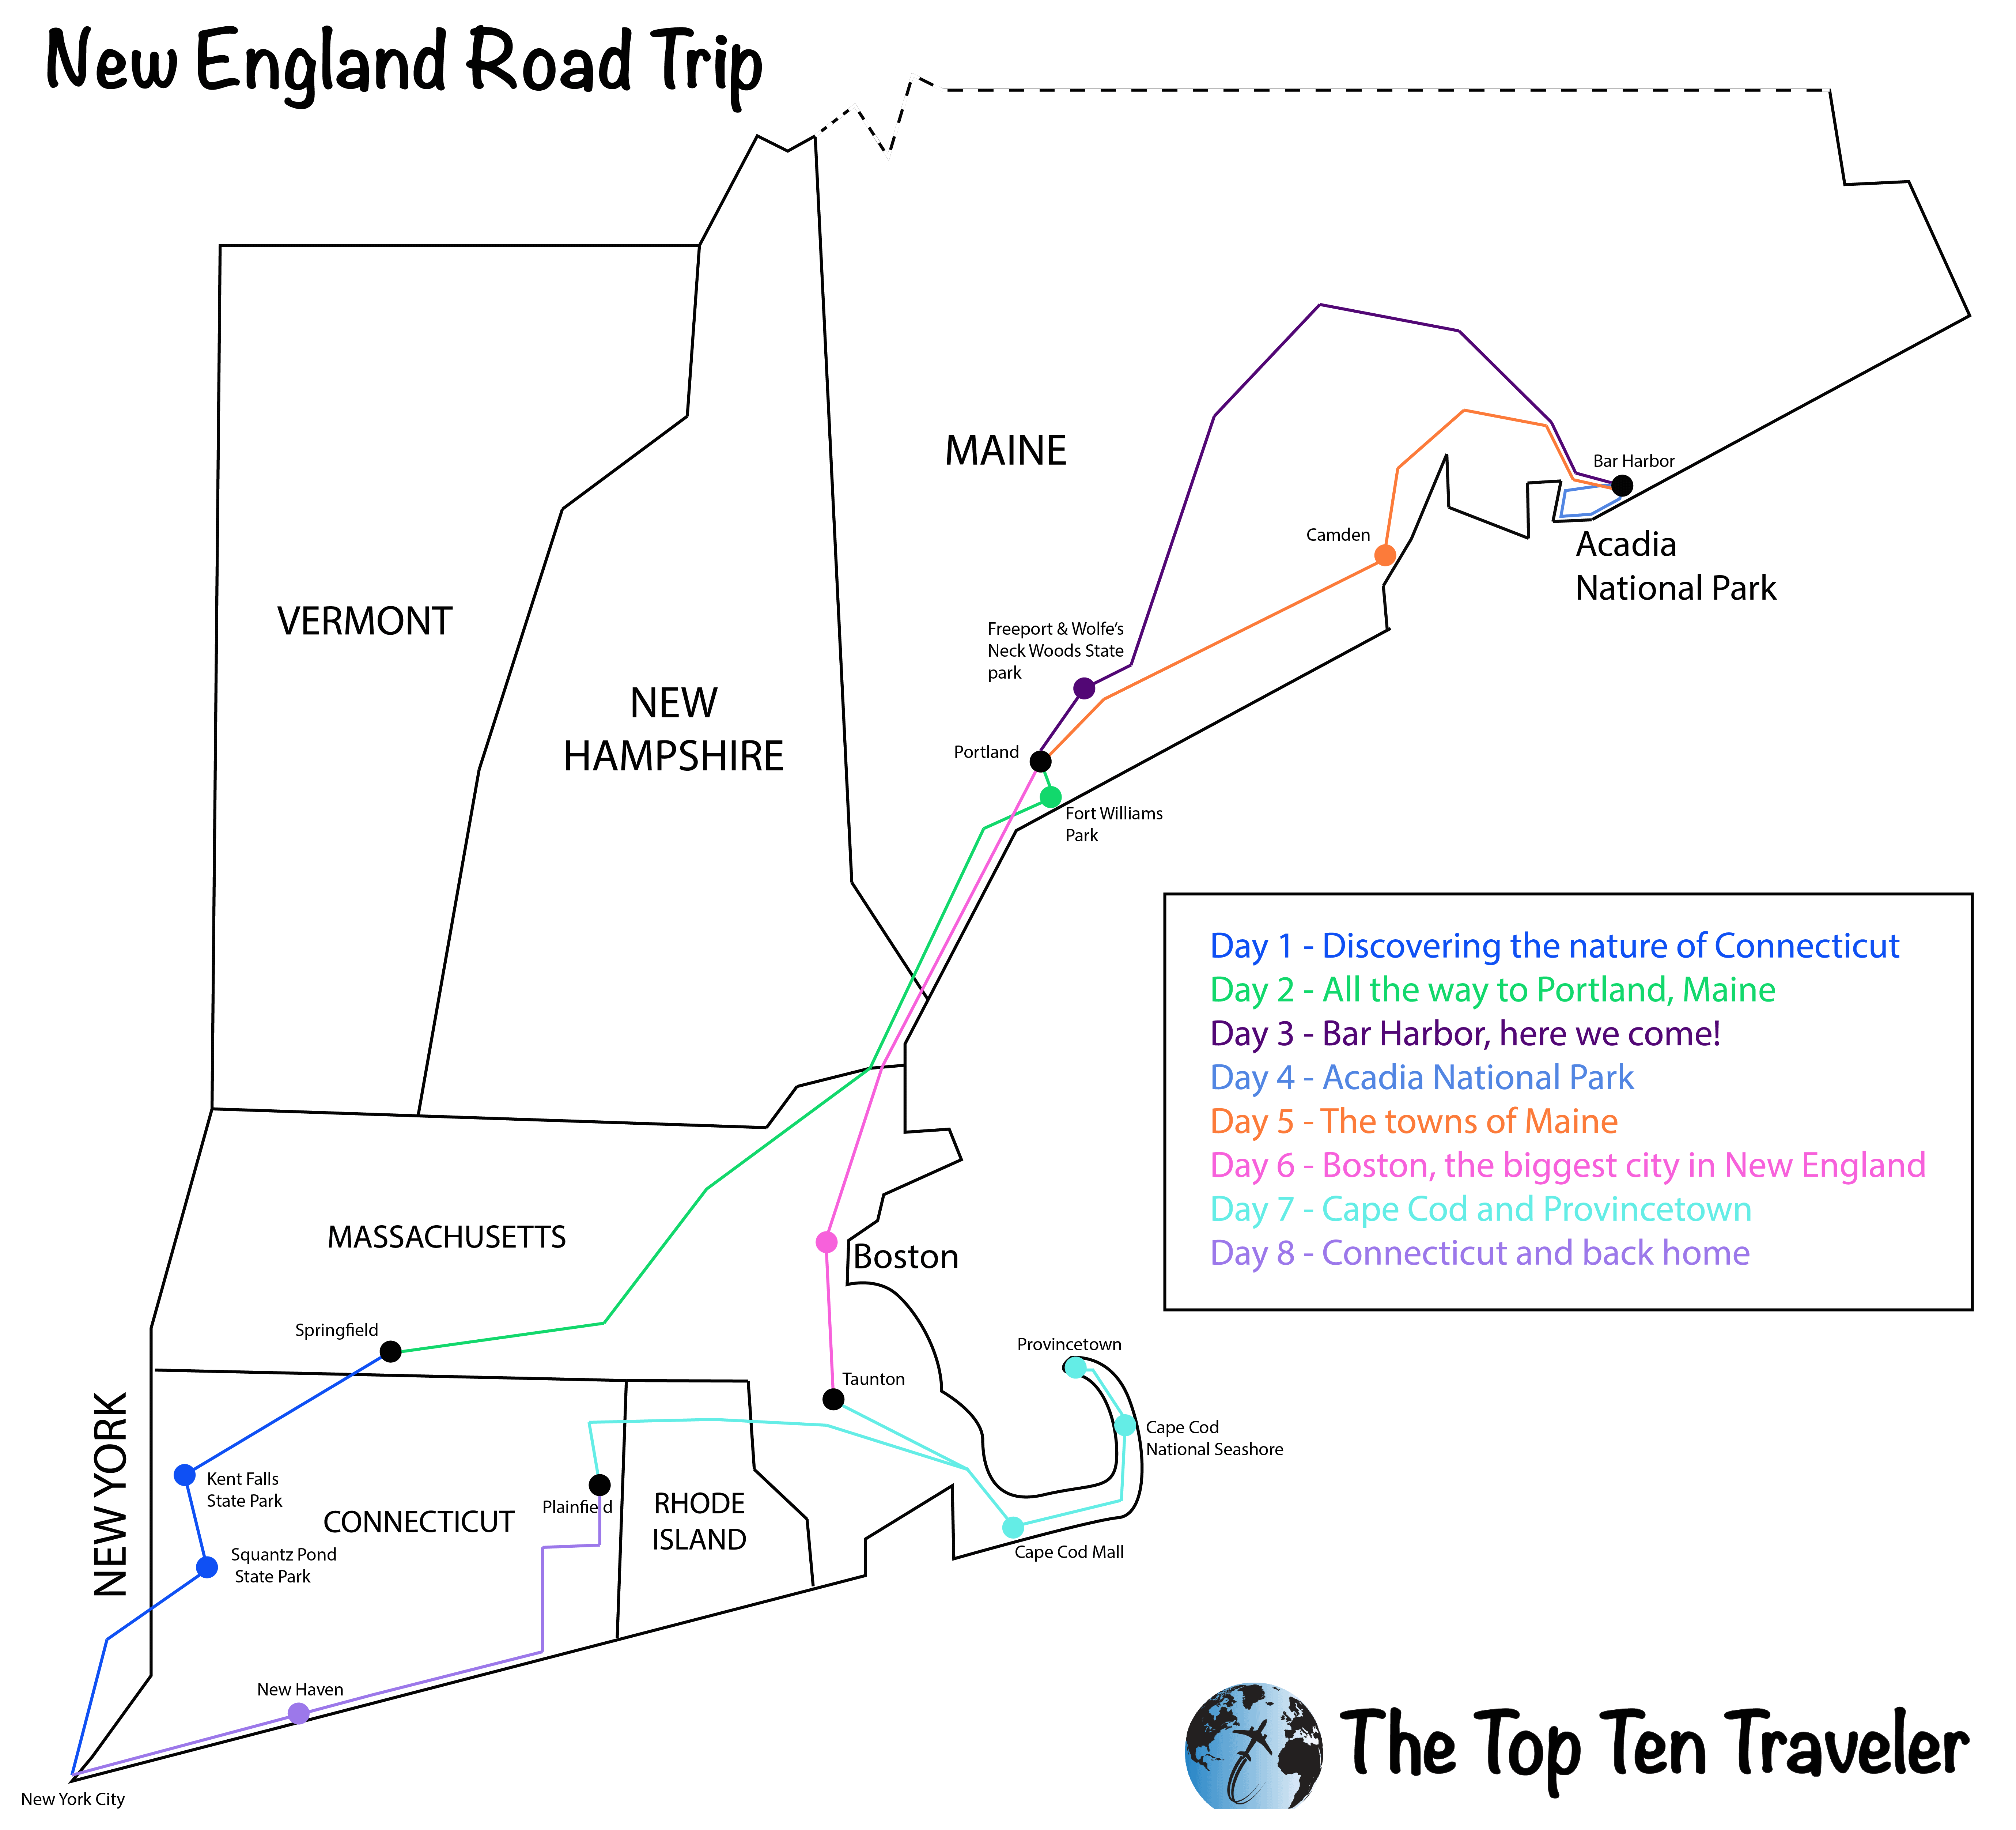 Map of New England  road trip itinerary. Road Trip Route. new england states connecticut maine massachusetts new hampshire rhode island vermont. new england road trip trip planner map